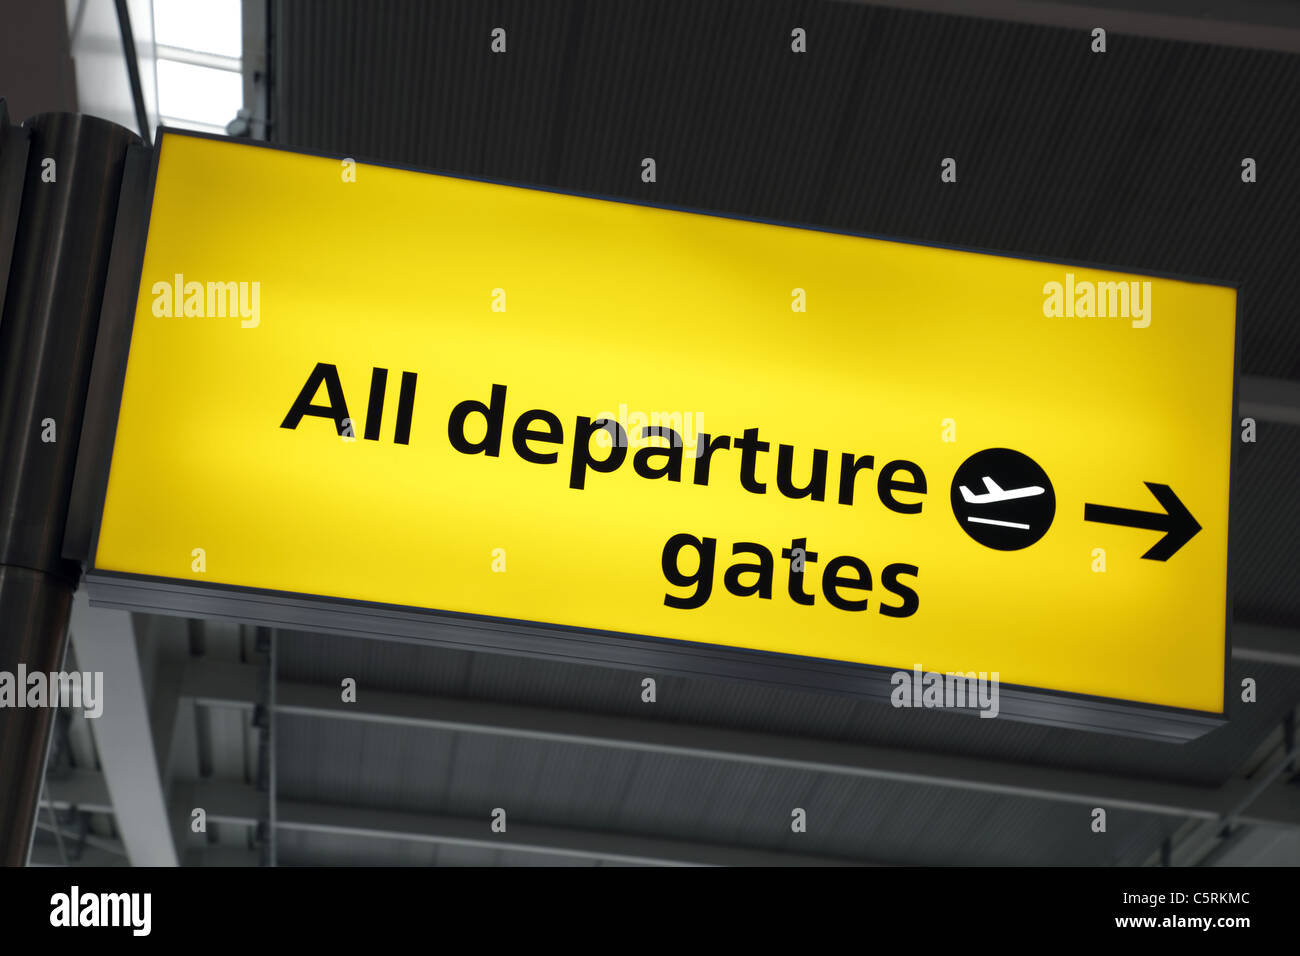 Airport departure gates sign - Stock Image